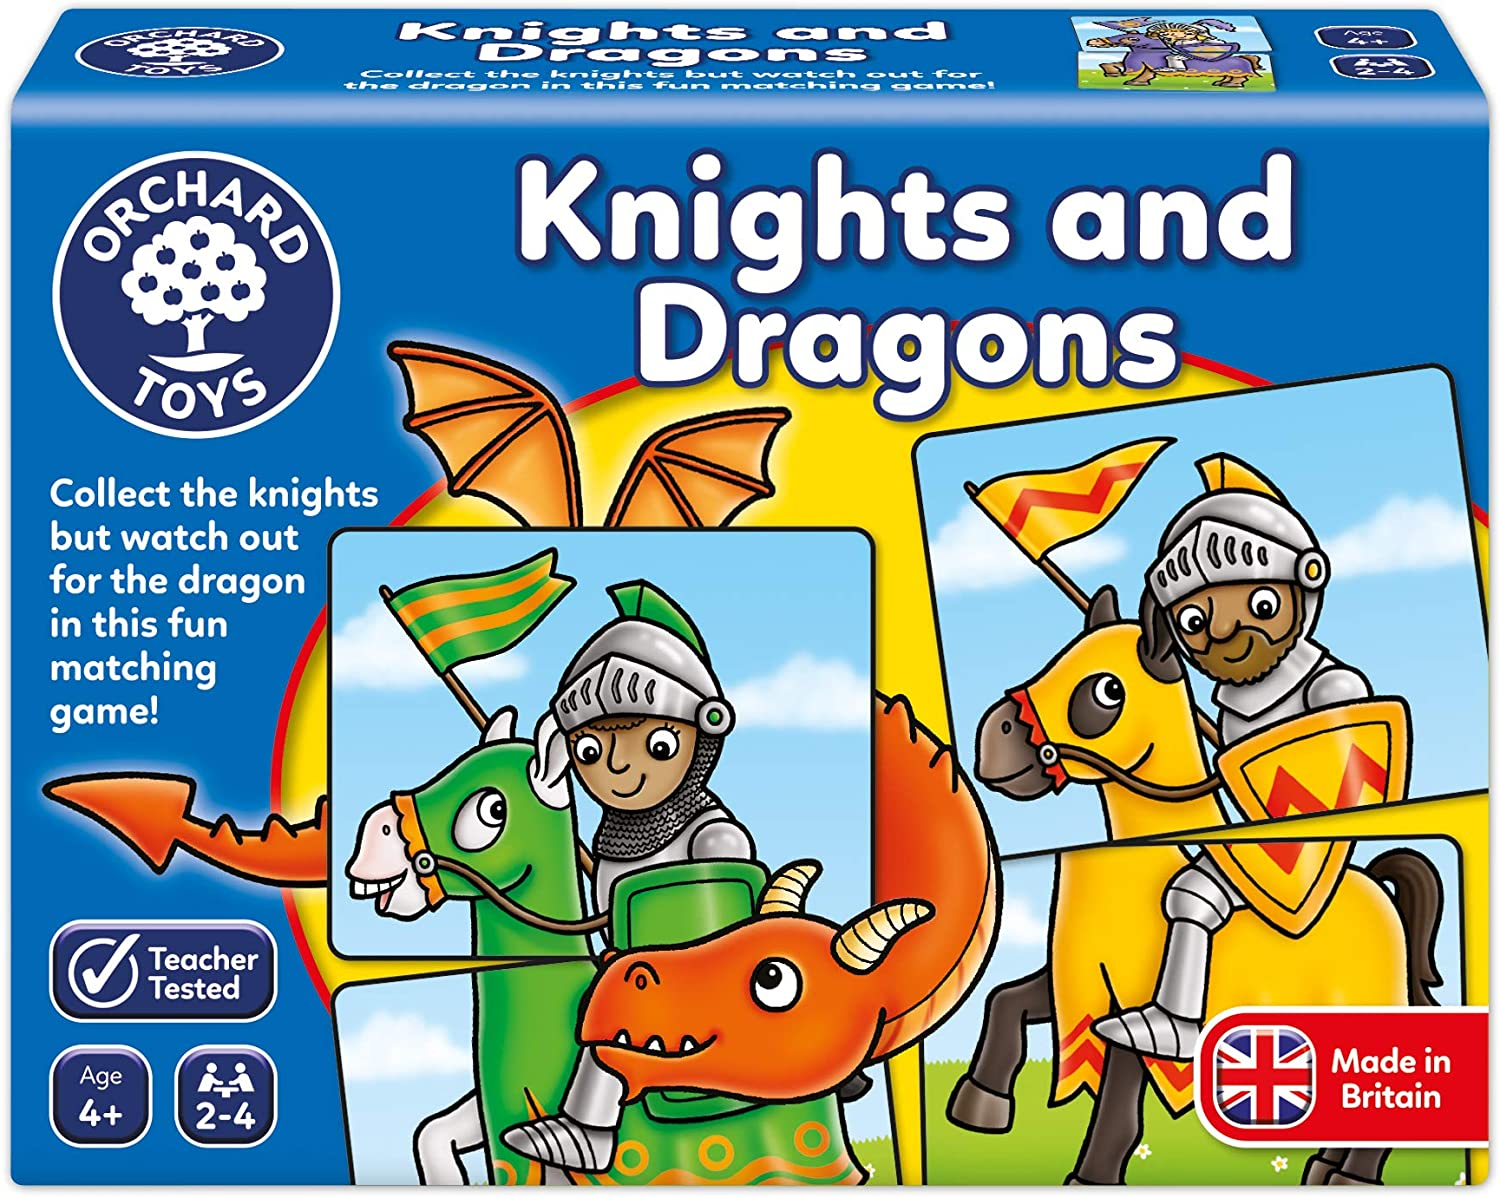 Knights and Dragons by Orchard Toys 4+